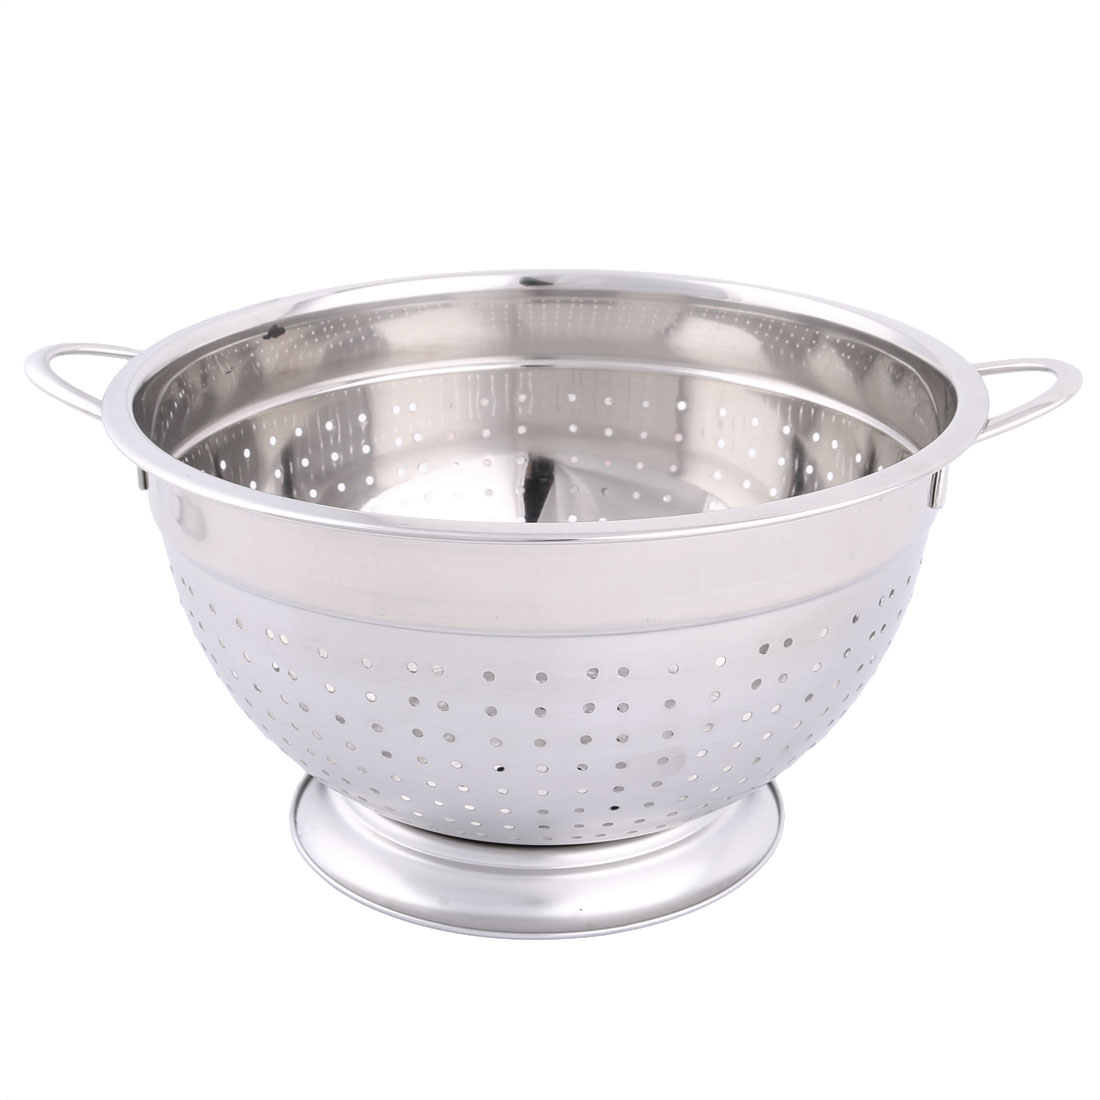 Hosehold Stainless Steel Two Lugs Round Holes Fruit Vegetable Container Basket 24cm Dia